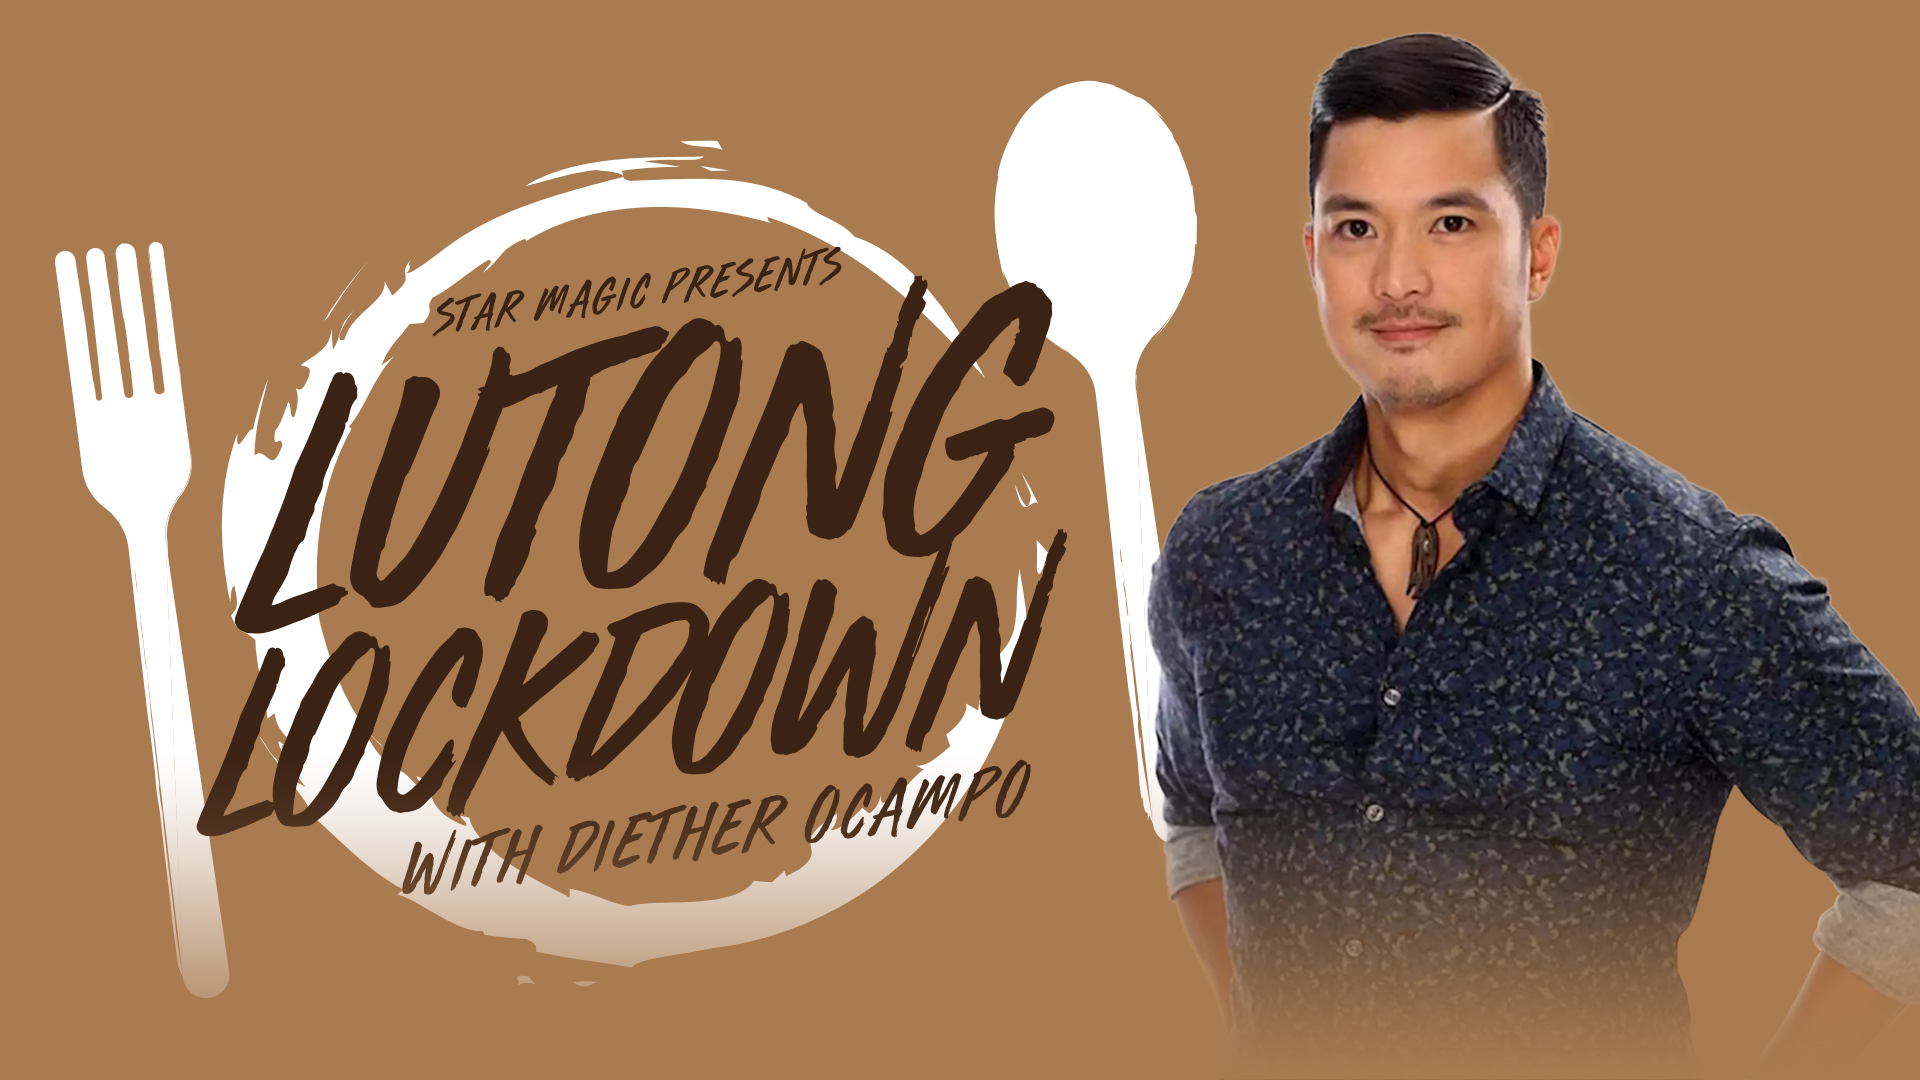 Lutong Lockdown with Diether Ocampo